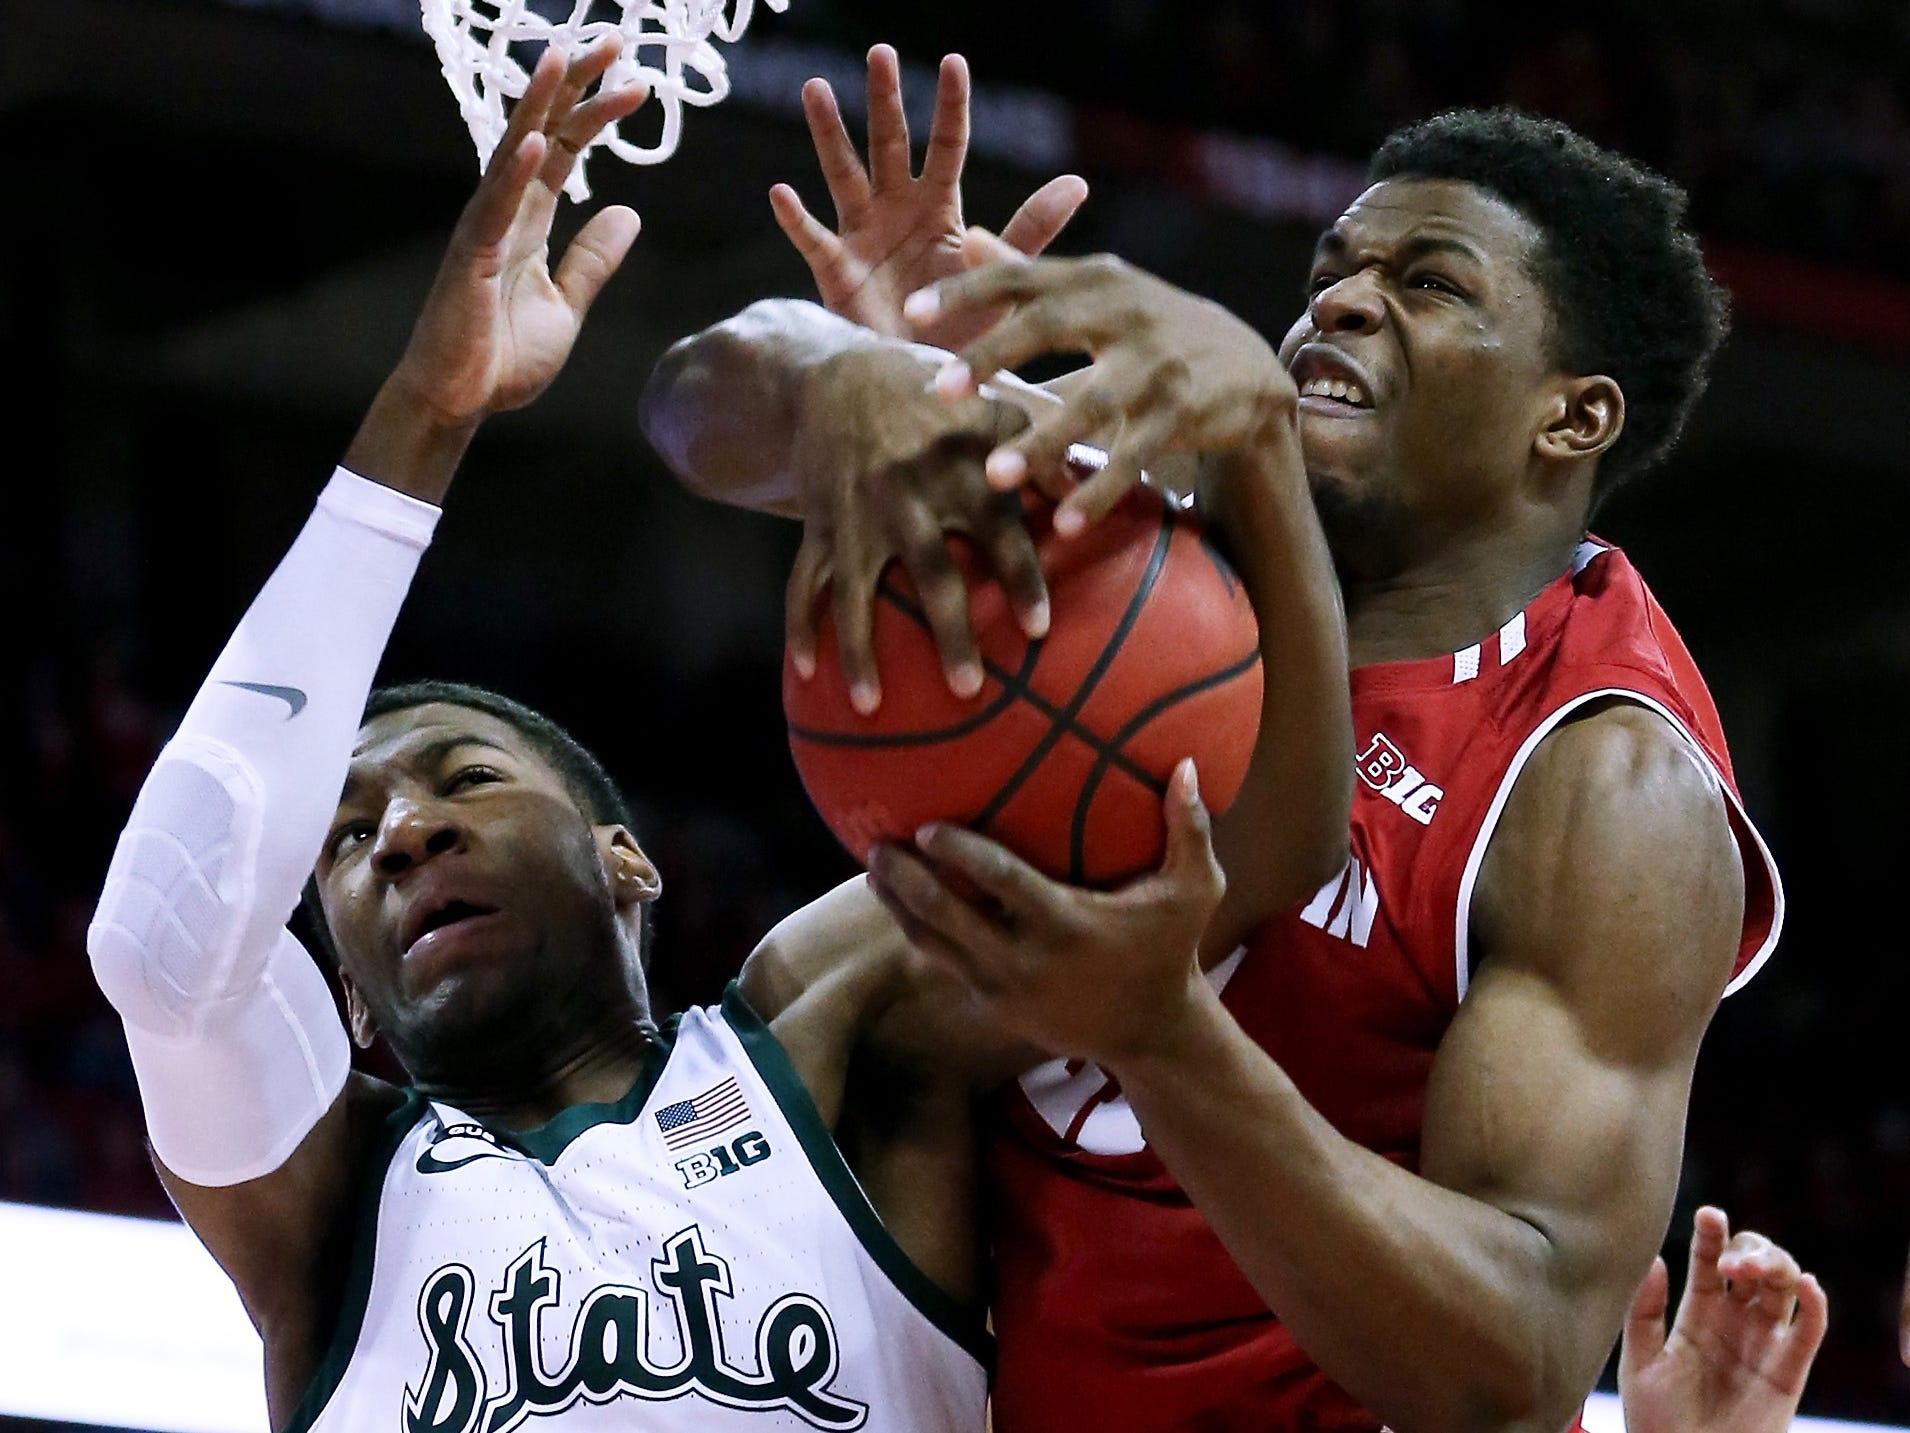 Michigan State's Aaron Henry (11) and Wisconsin's Khalil Iverson battle for a rebound in the first half.